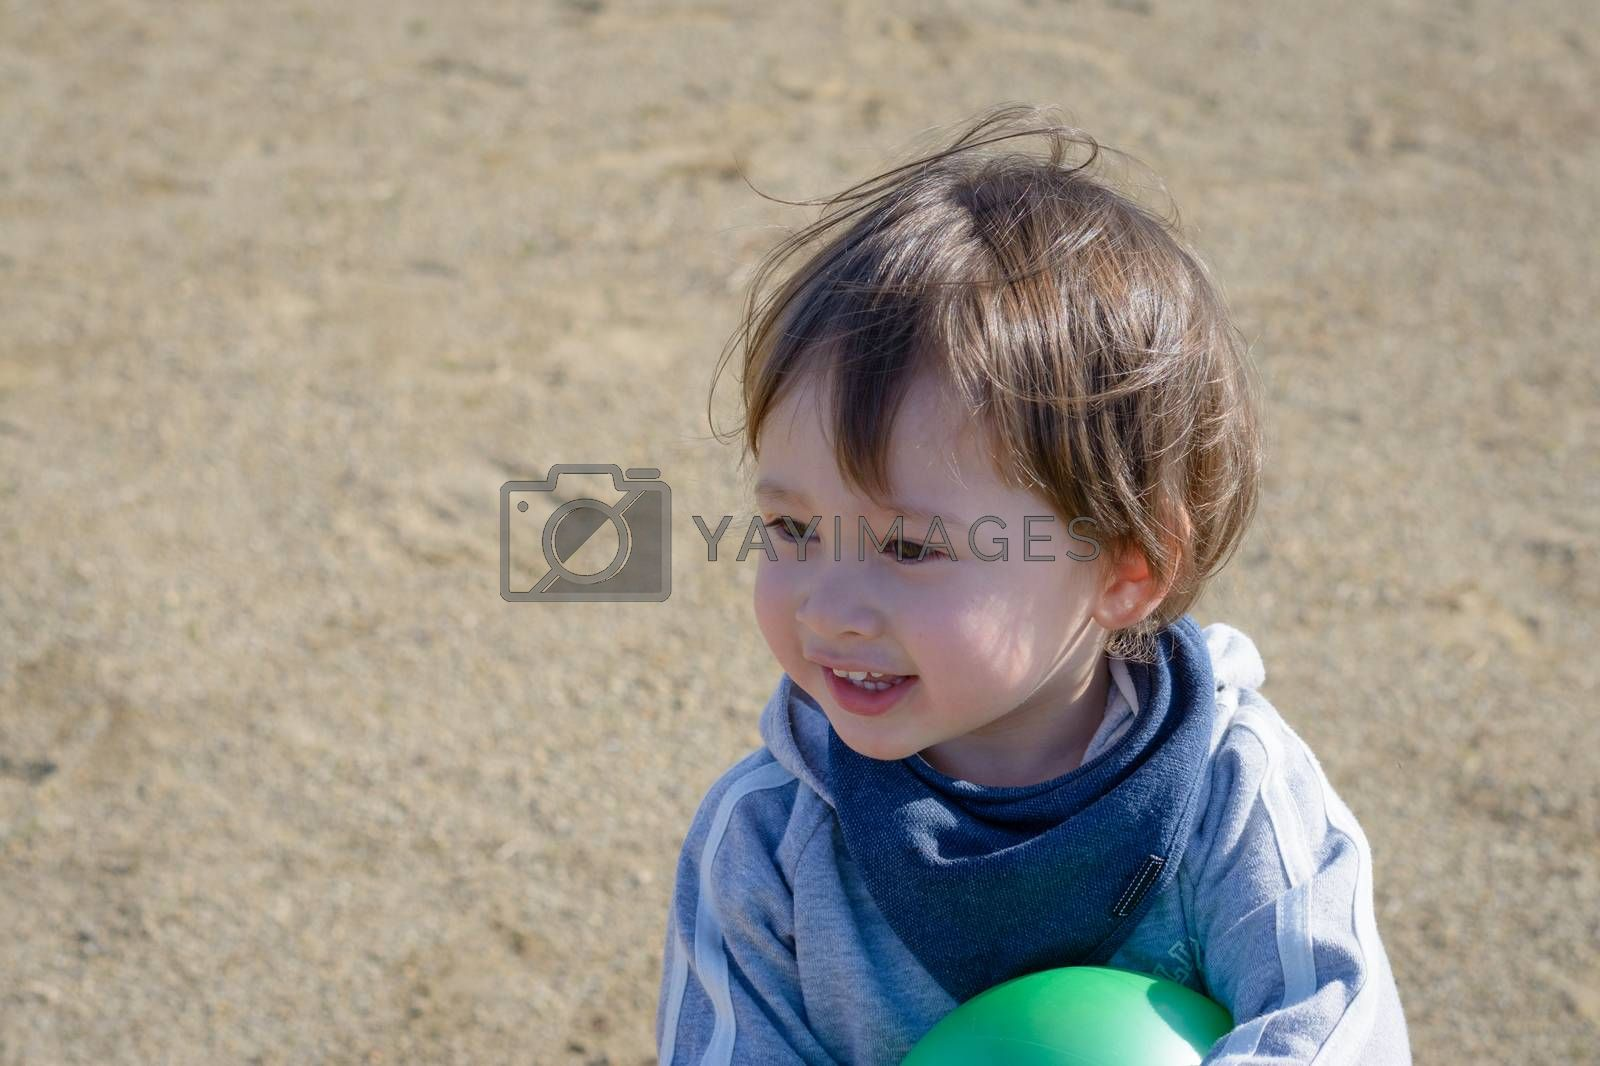 A 2 year old boy holding a green ball smiling in a playground.